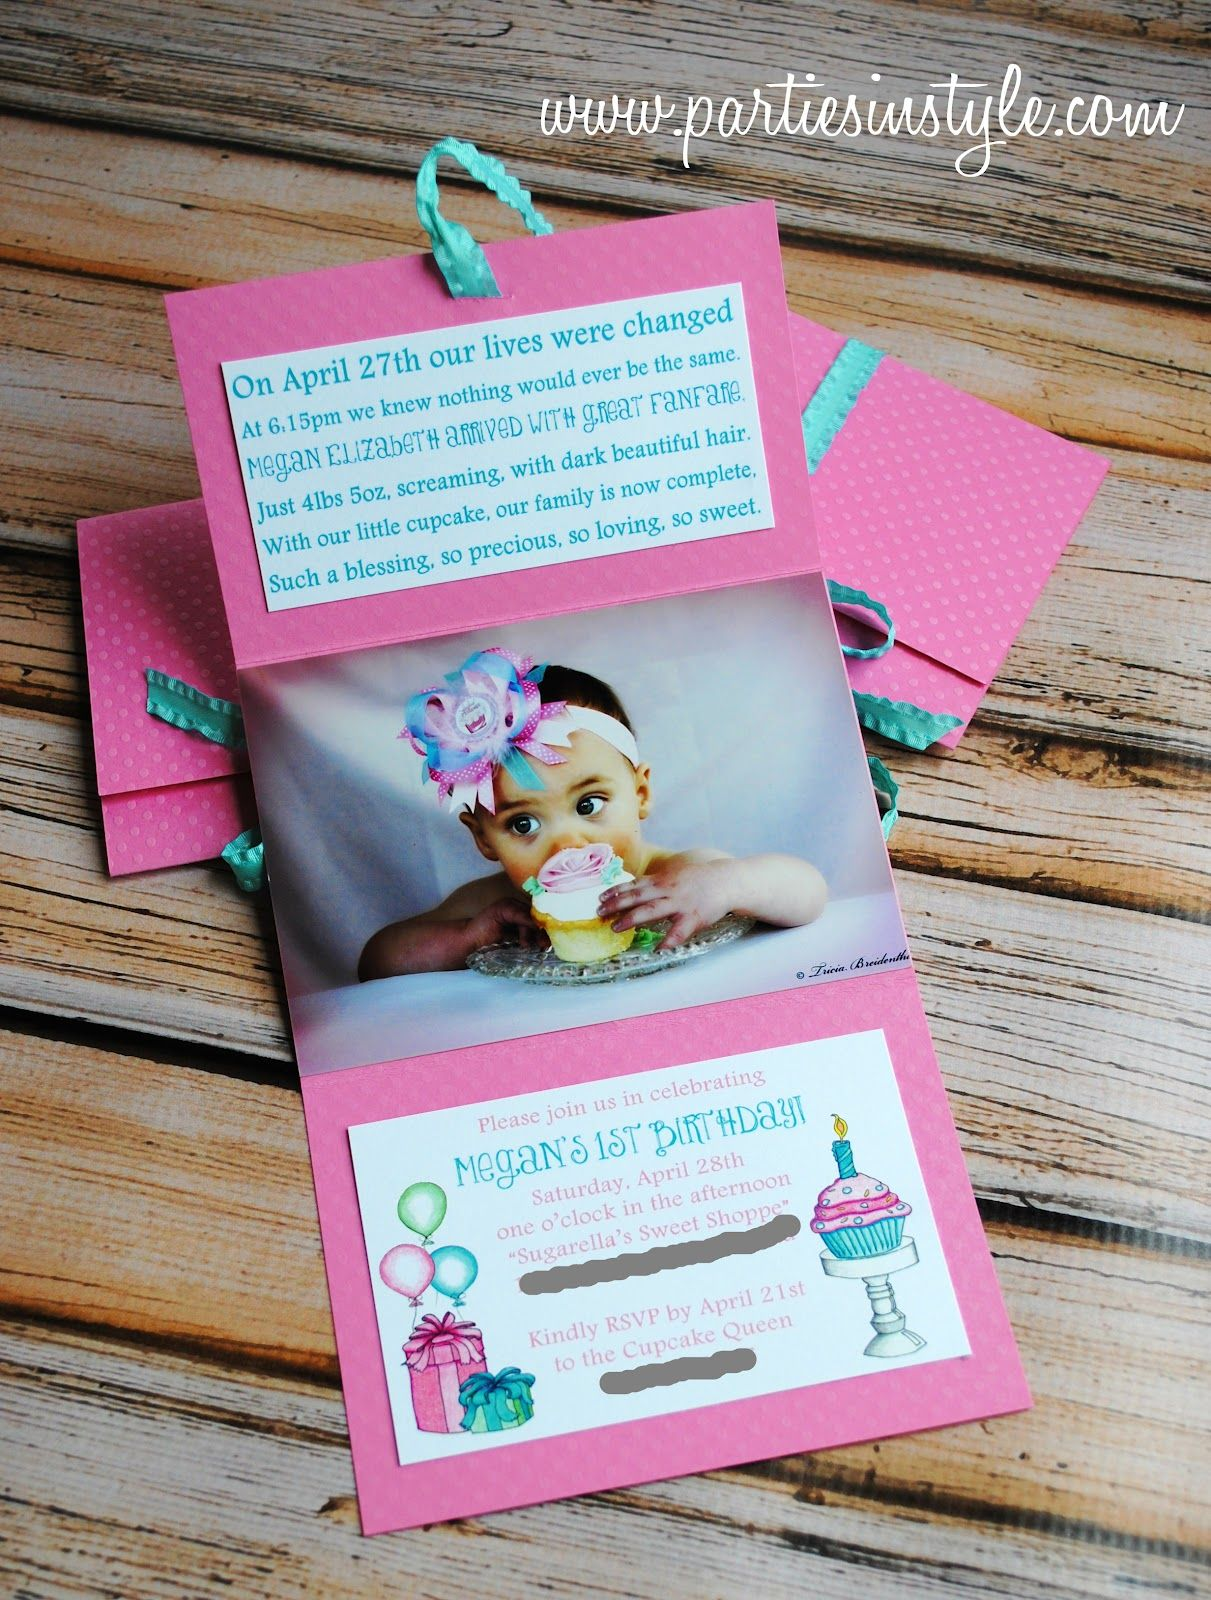 DIY Invitations I Love This Ides For Xaviers Future Birthday Parties